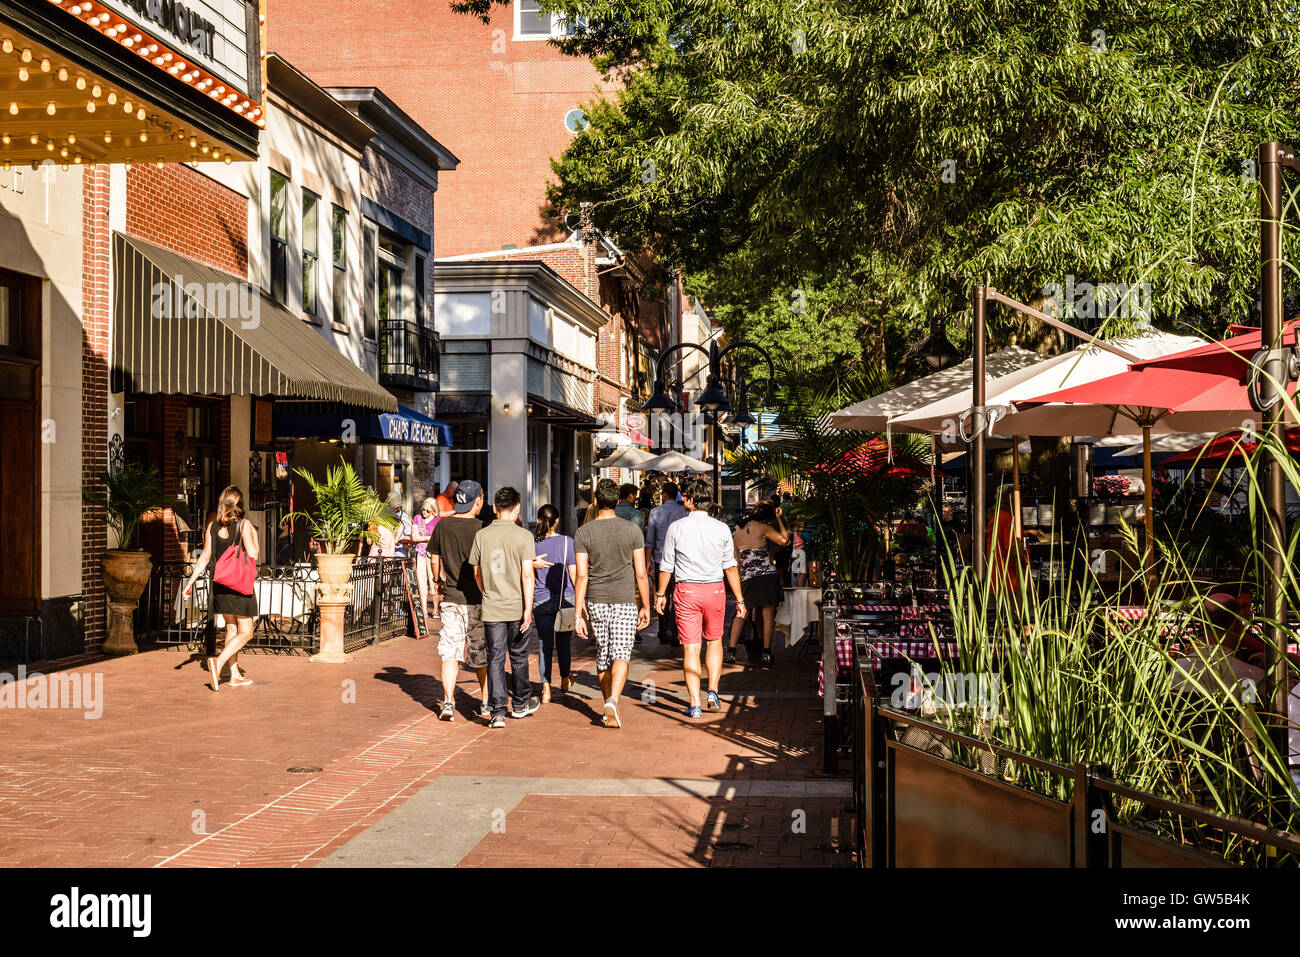 Best Charlottesville Shopping: See reviews and photos of shops, malls & outlets in Charlottesville, Virginia on TripAdvisor.